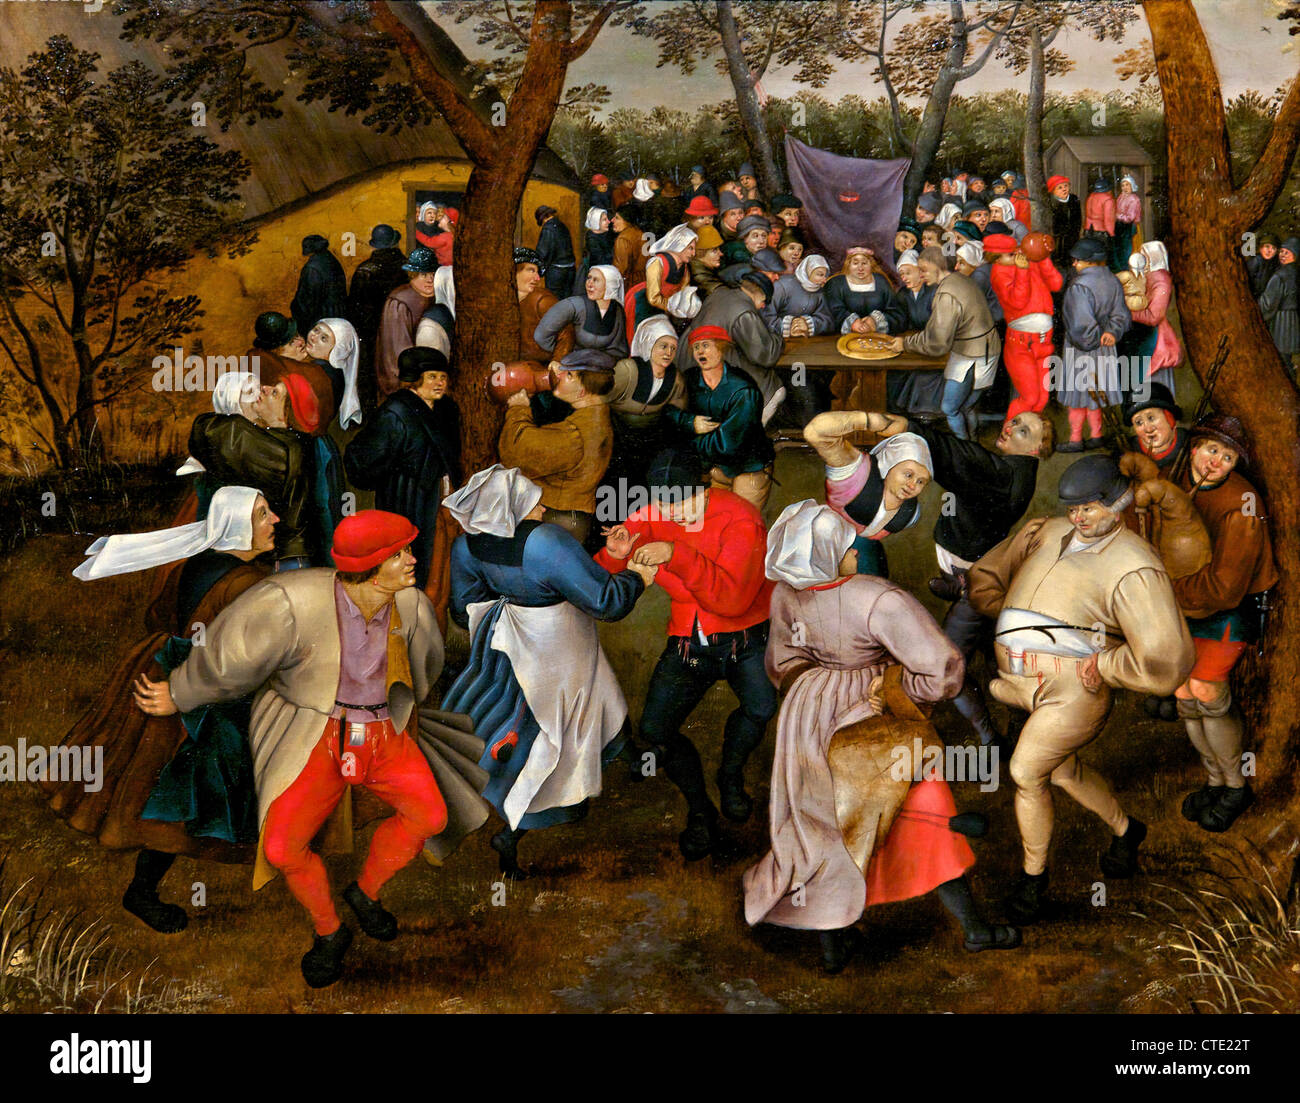 Peasant Wedding Dance, by Pieter Brueghel the Younger, 1607, Musees Royaux des Beaux-Arts, Brussels, Belgium, Europe - Stock Image